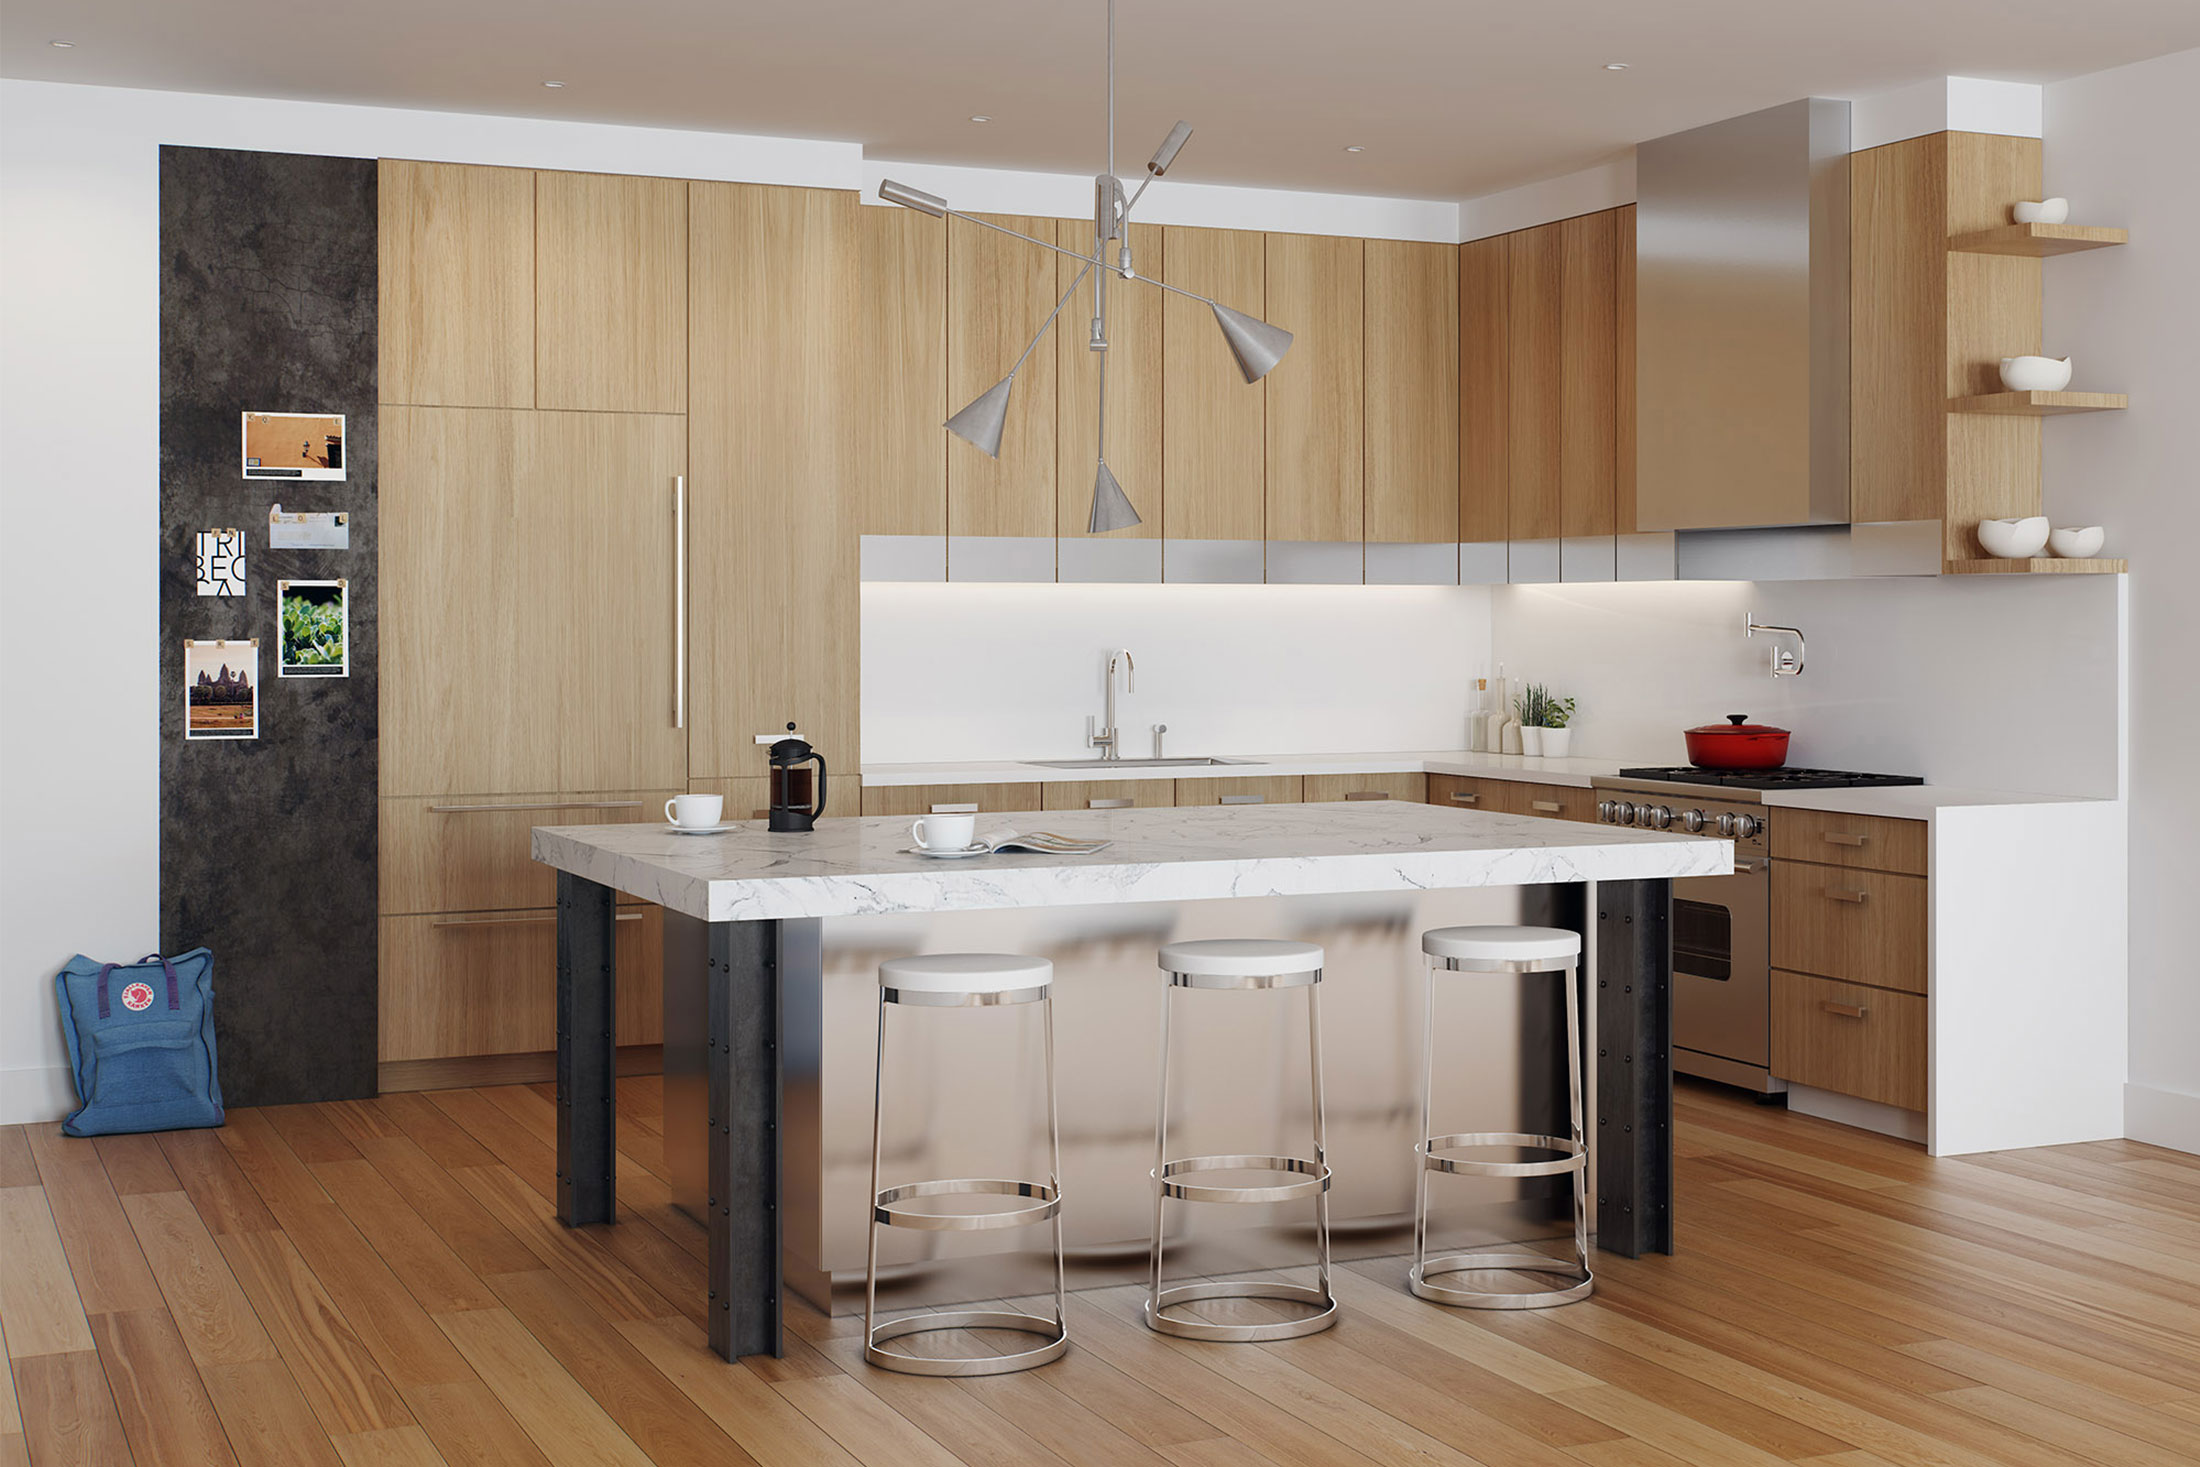 Architectural Rendering of the kitchen of the 15 Hubert Street project located in Tribeca, New York City